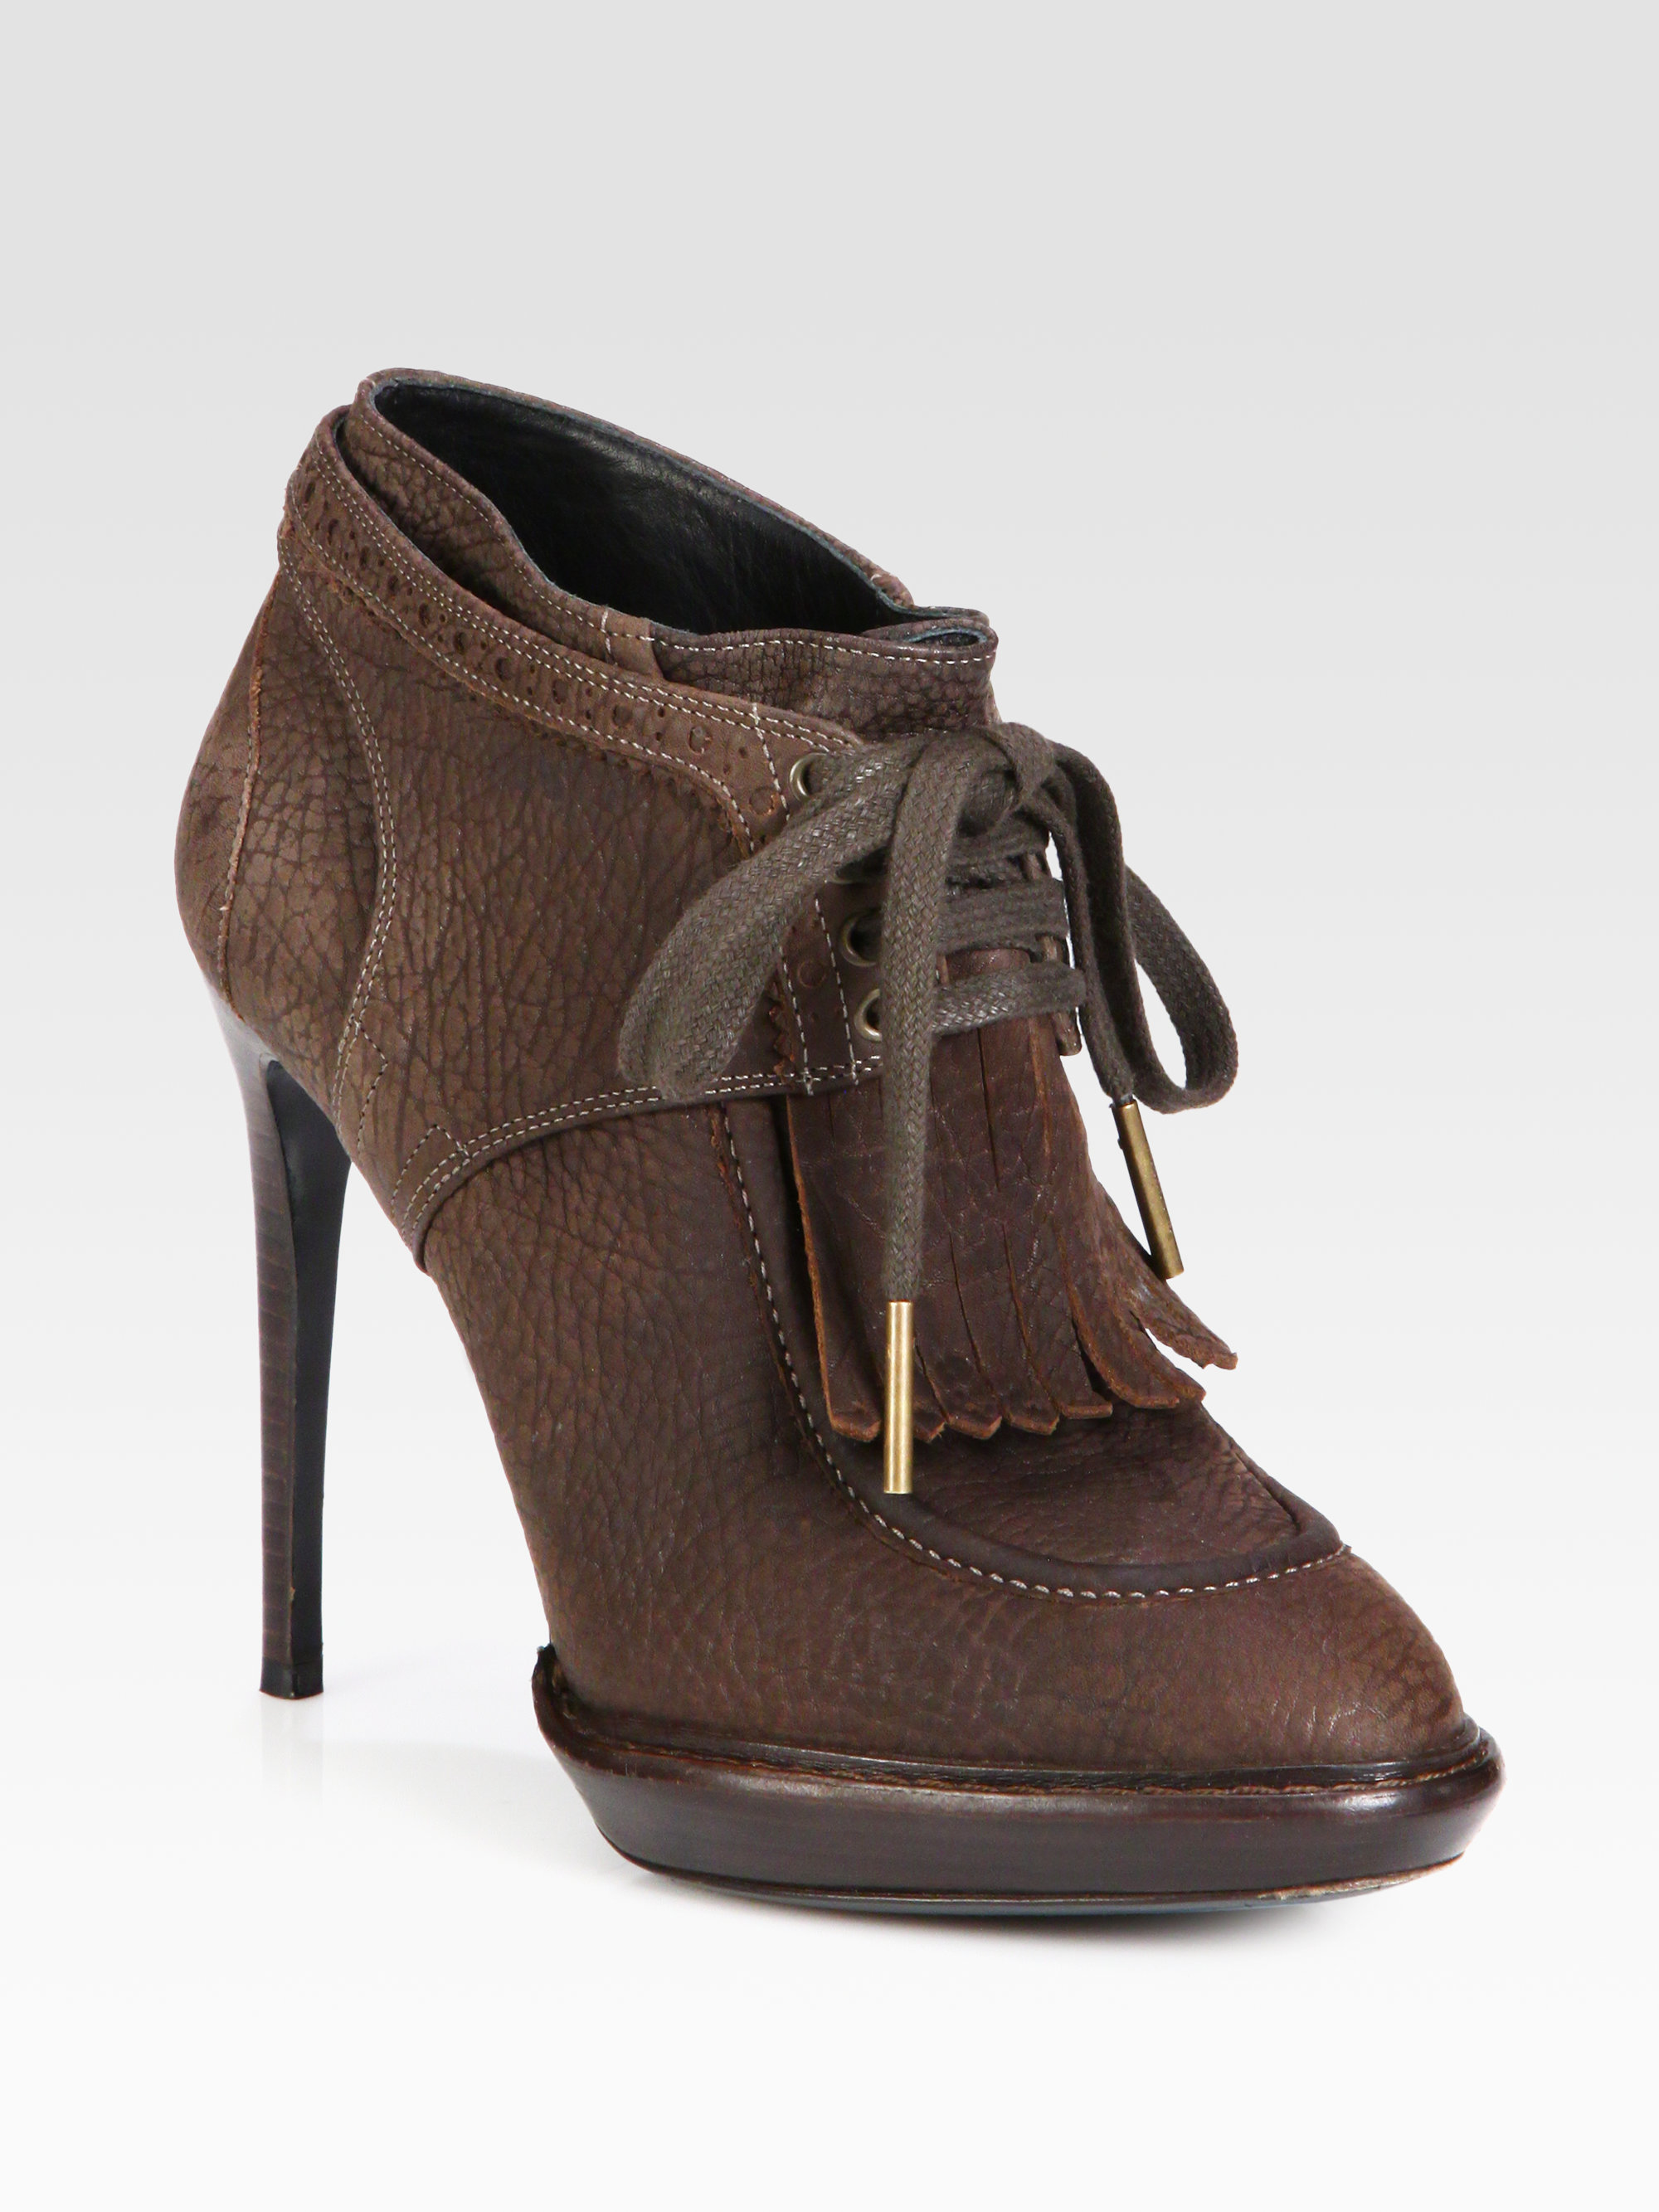 burberry prorsum leather lace up platform ankle boots in